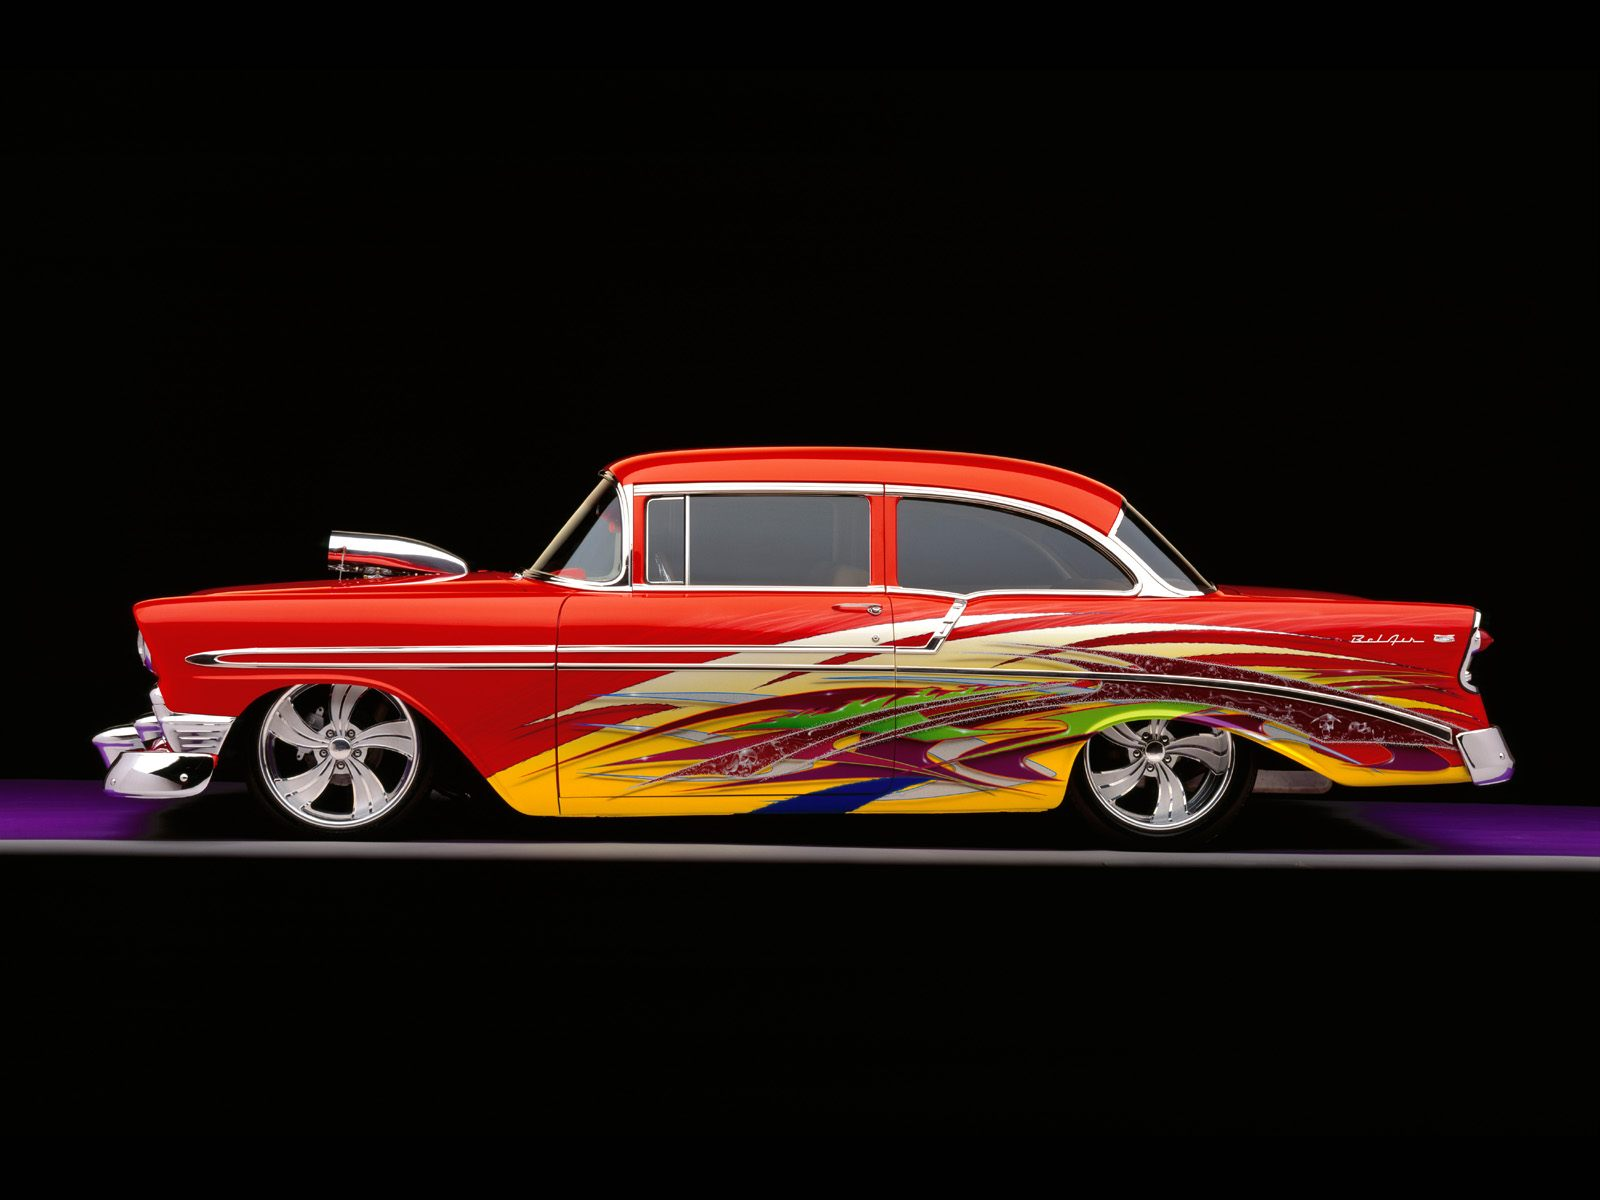 Cool 3d Car Backgrounds 9900 Hd Wallpapers in 3D   Imagescicom 1600x1200